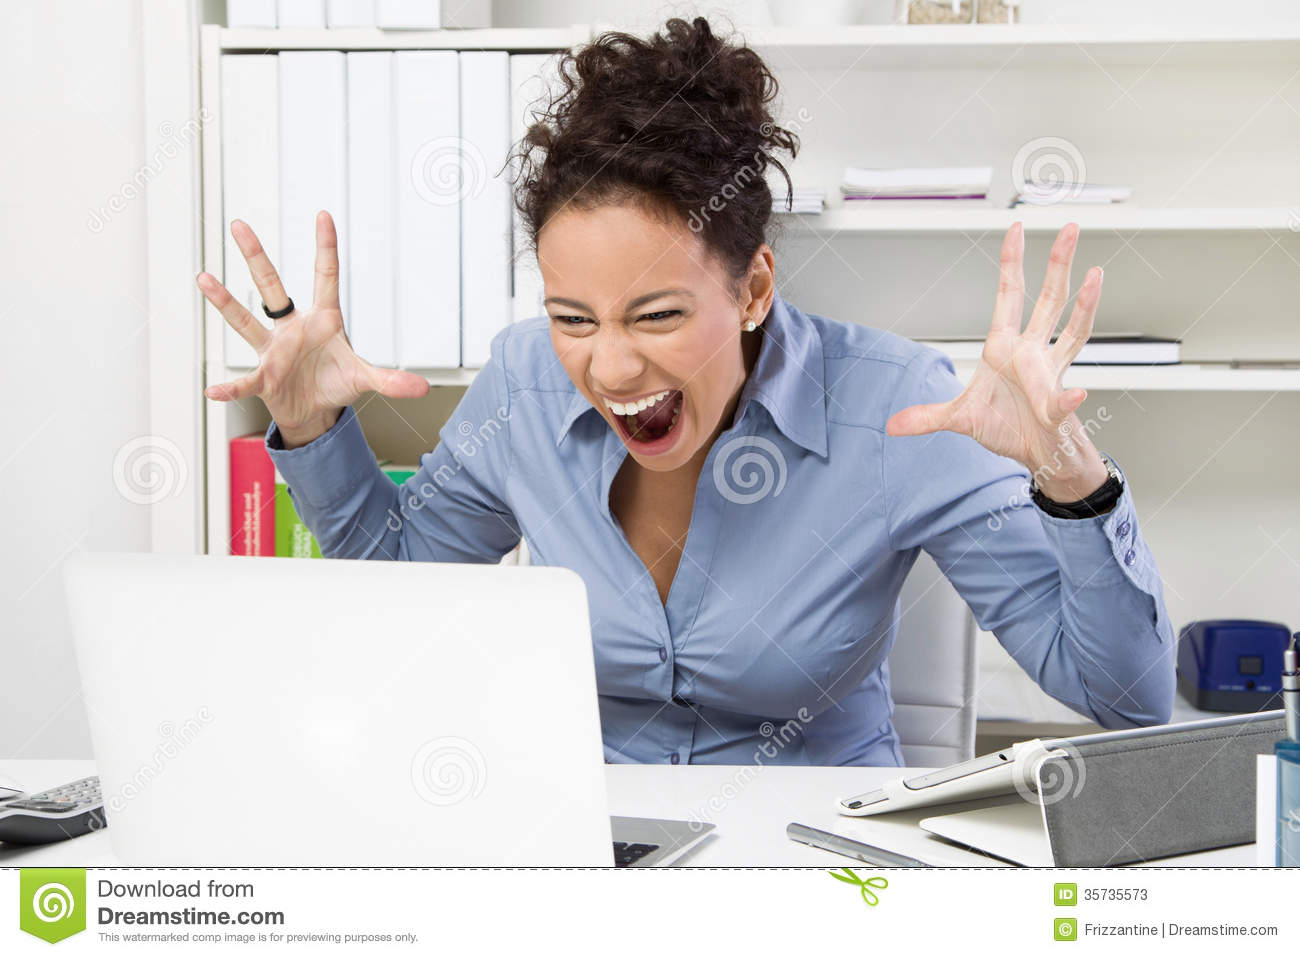 outburst-office-angry-business-woman-workplace-35735573.jpg